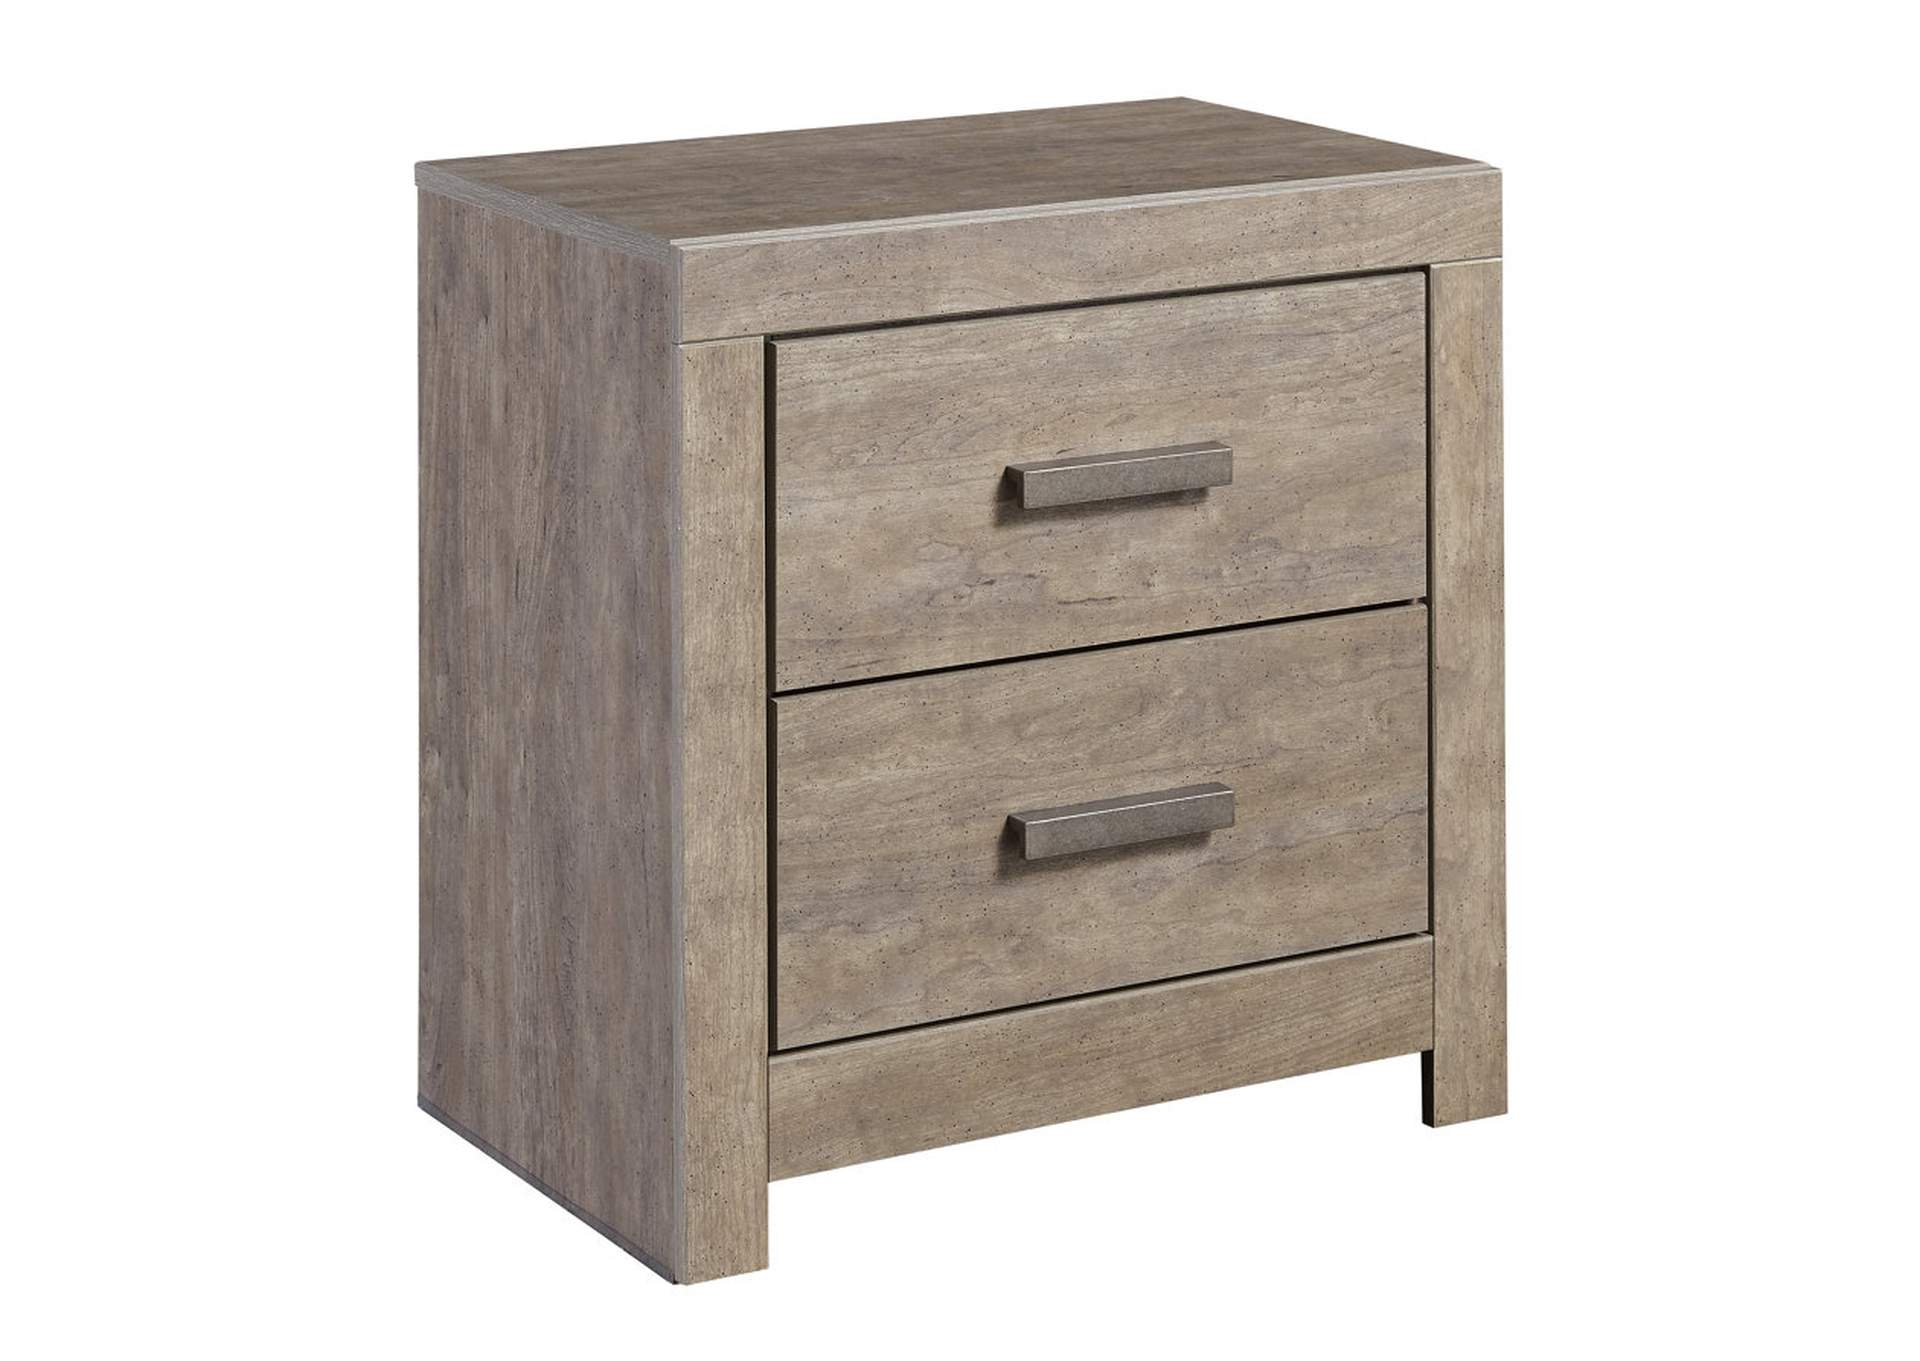 Culverbach Gray Two Drawer Night Stand,ABF Signature Design by Ashley